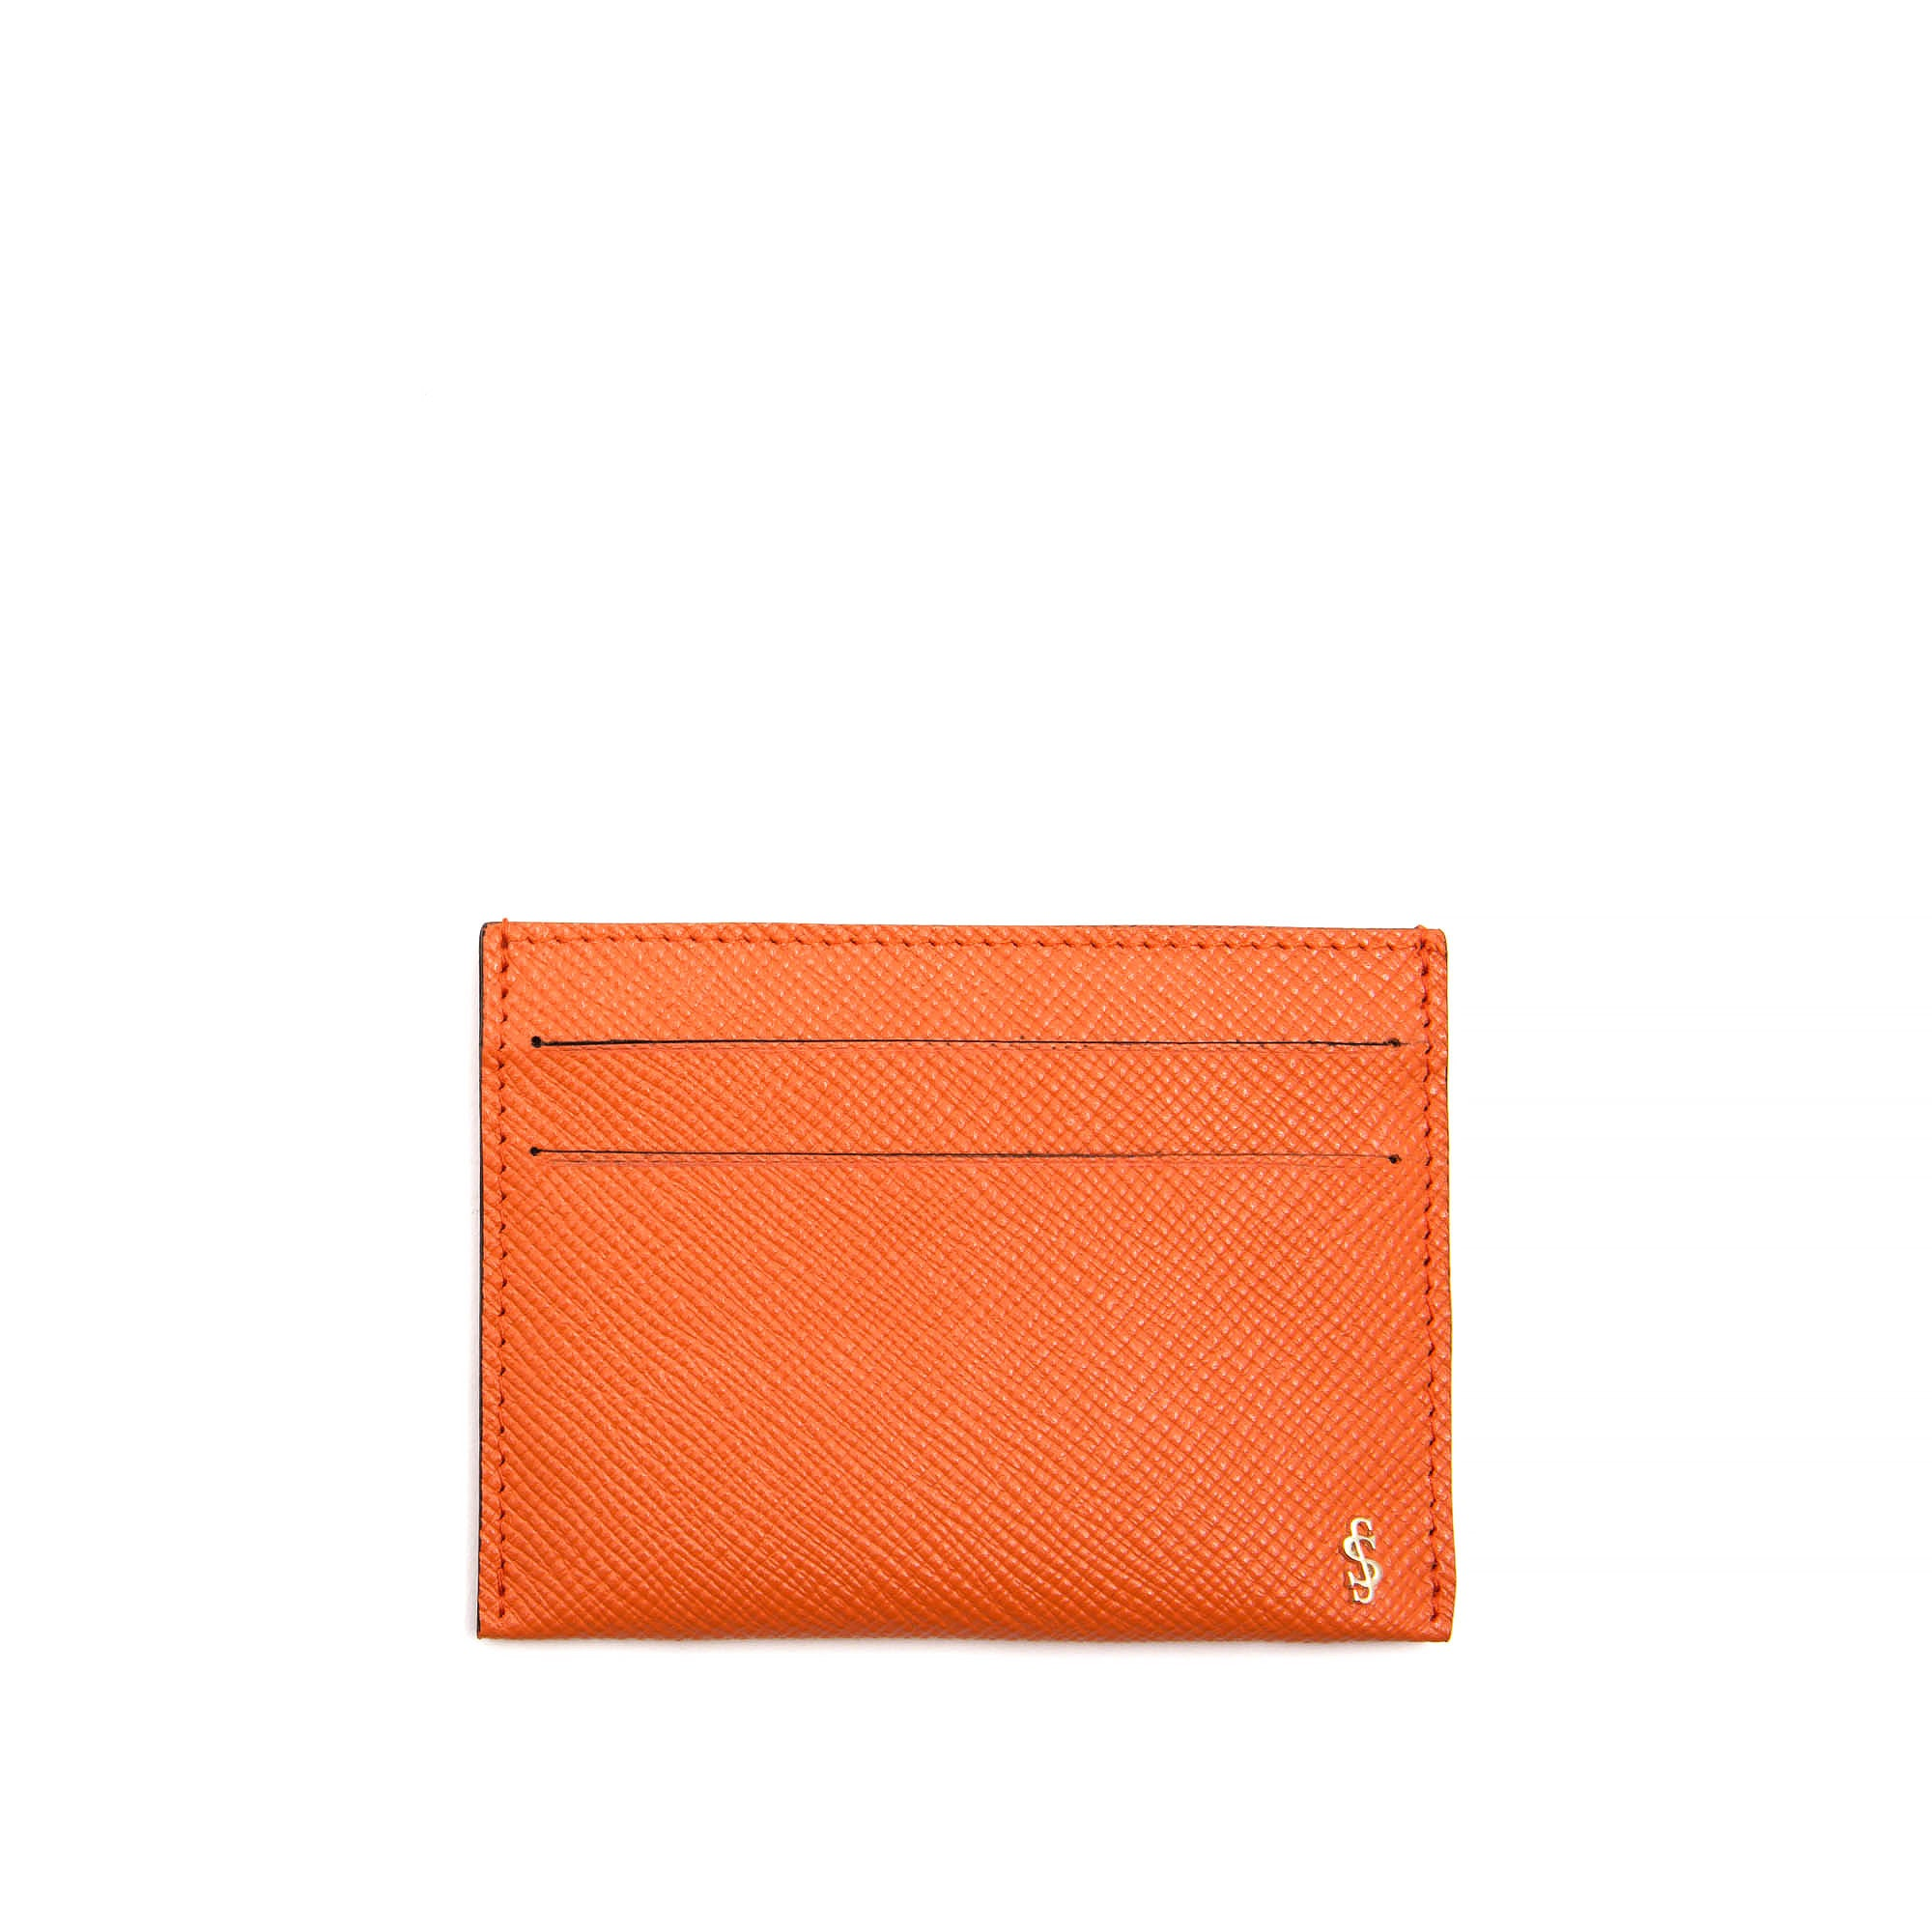 The simple card case in scratch and water resistant, flame orange evolution leather. Tiny enough to carry in your pocket or your bag. Slots on each side for # credit cards and an opening in the middle for a key or dollars.